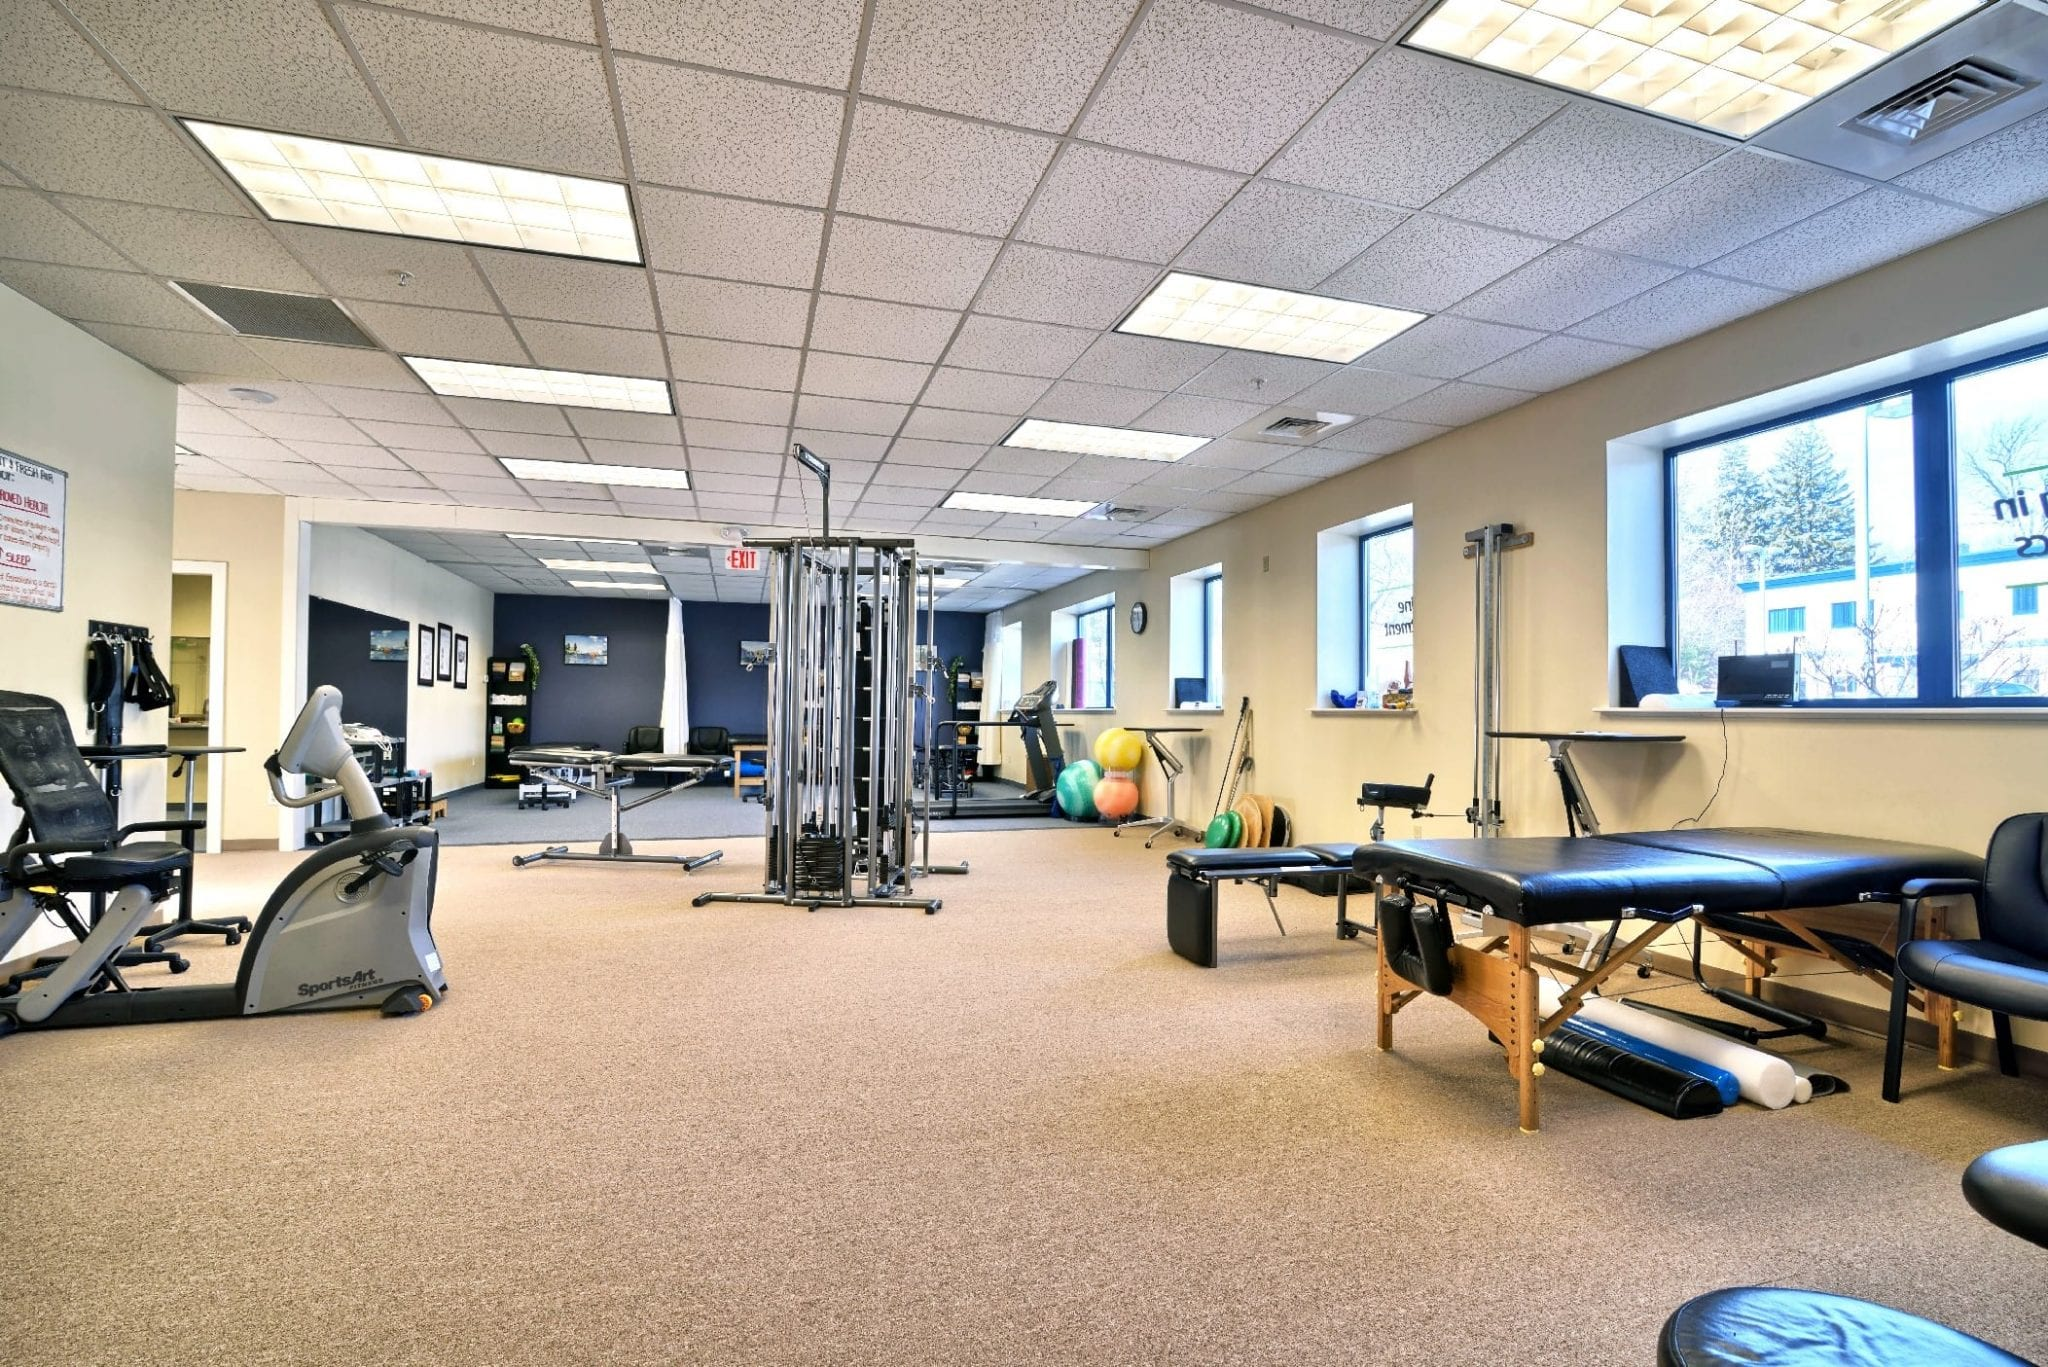 An image of the clean interior of our physical therapy clinic in Amesbury, Massachusetts.